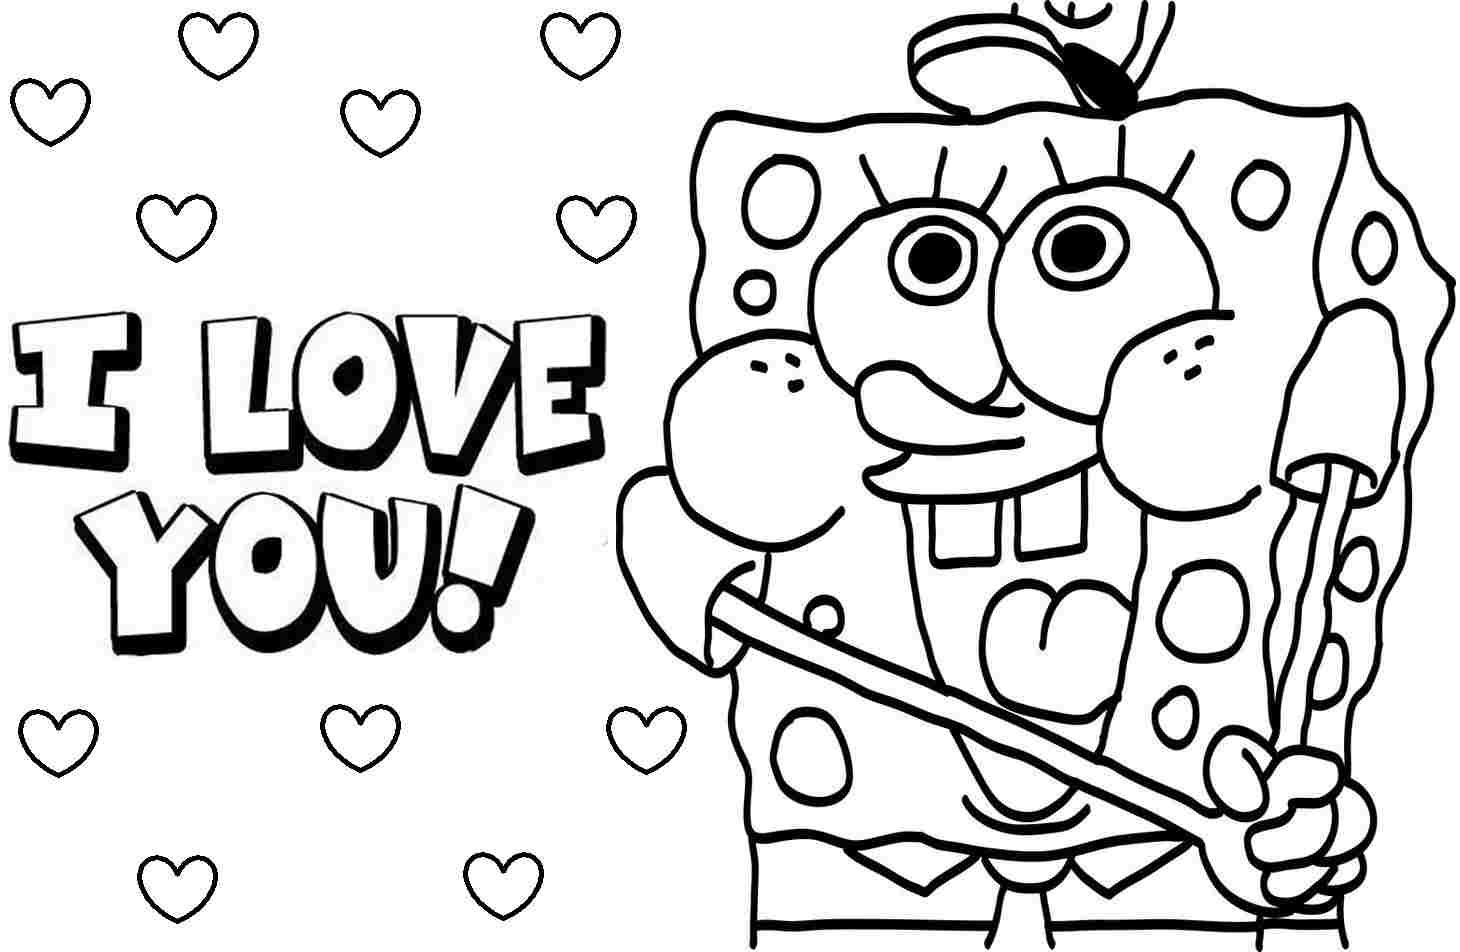 Printable Spongebob Coloring Pages Ideas Free Coloring Sheets Printable Valentines Coloring Pages Coloring Pages For Teenagers Valentine Coloring Pages